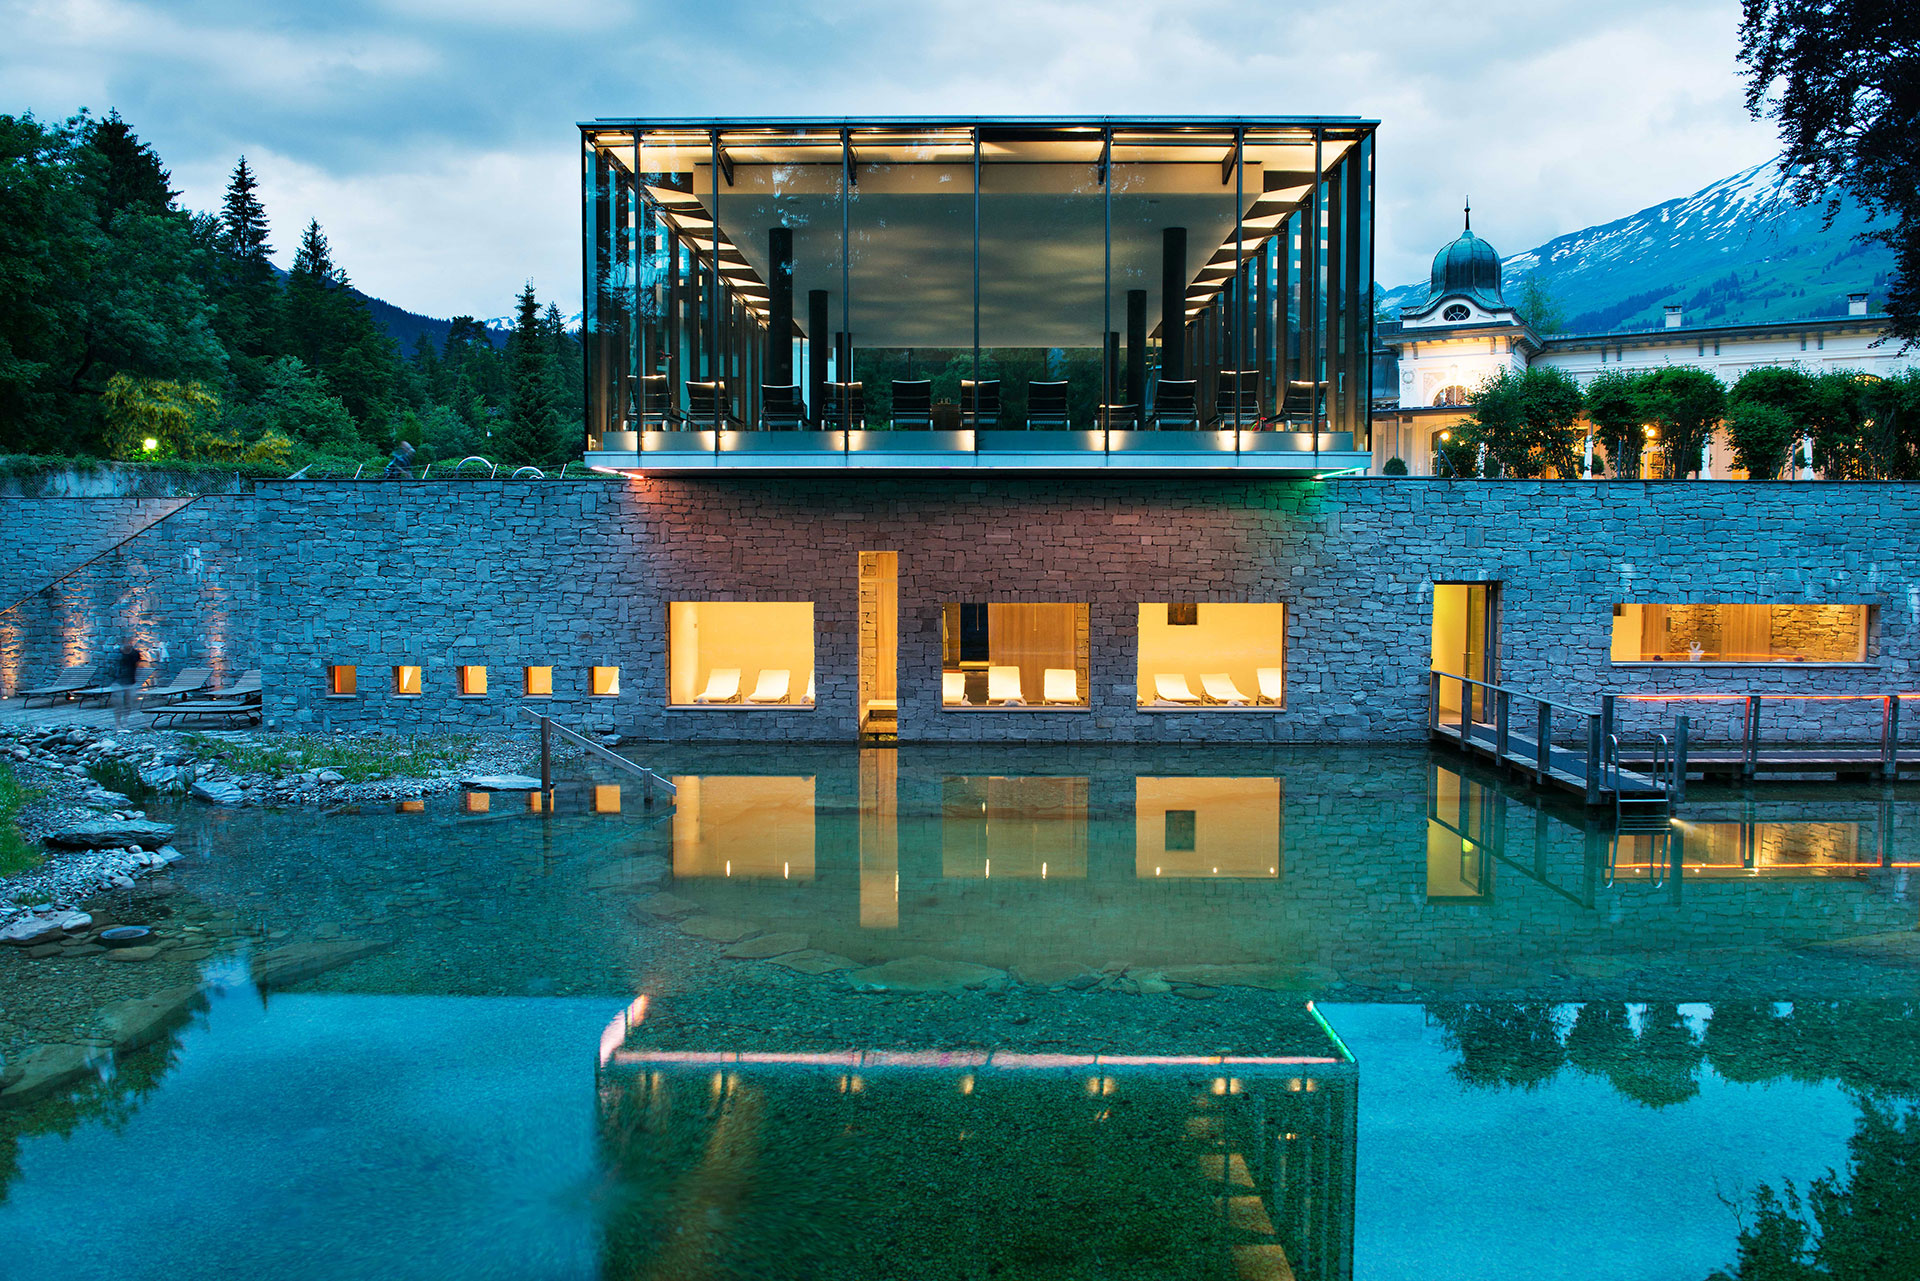 an exterior shot of the resort's spa and outdoor pool. The building is modern and layered. The pool is natural, blending seamlessly into the surrounding nature. There are golden lights coming from the windows of the spa and it is reflecting off of the pool. In the distance are the evergreen trees and tops of the swiss alps.